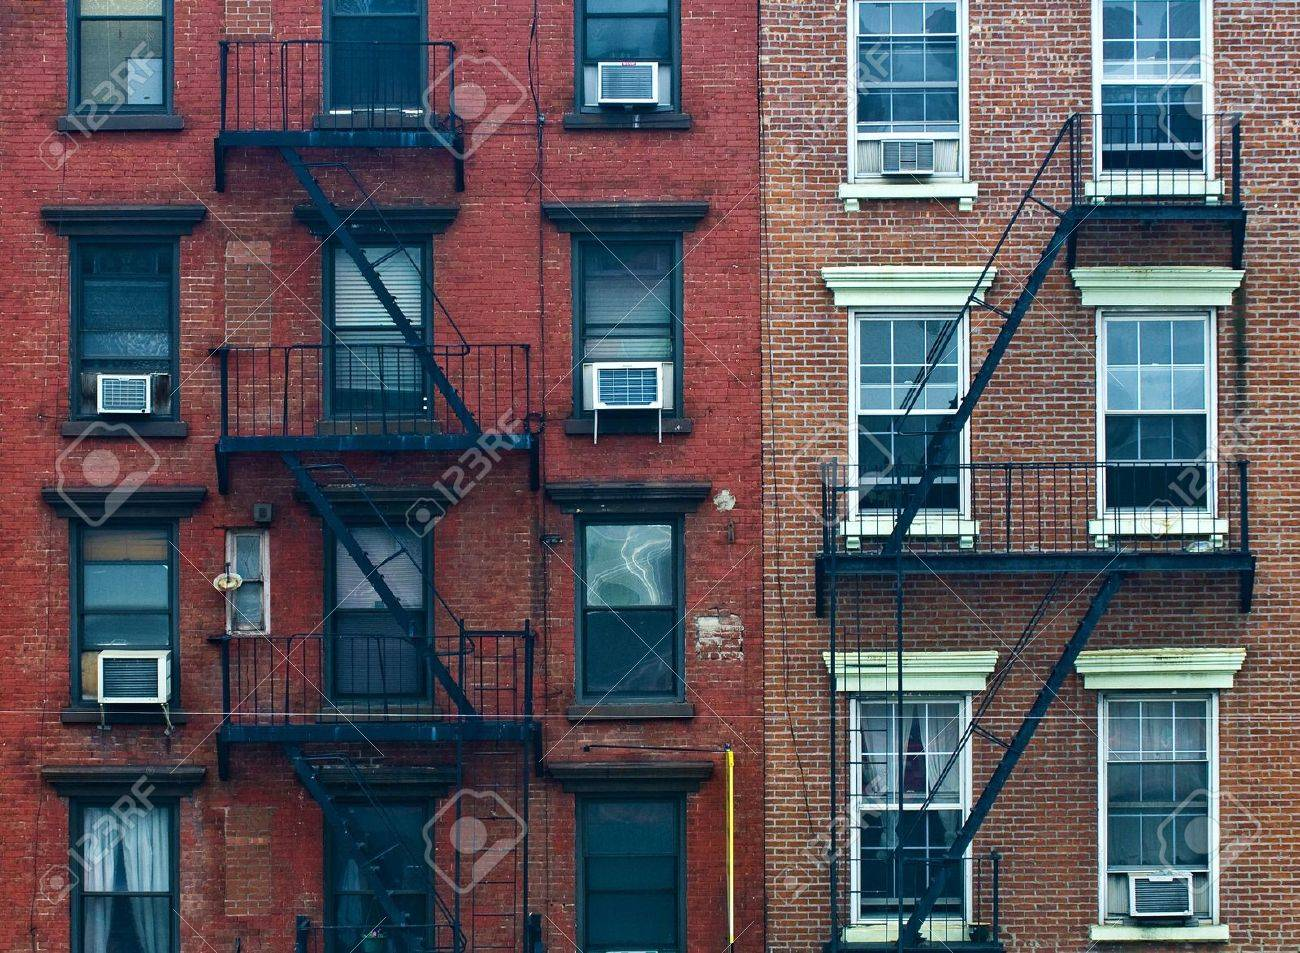 A fire escape of an apartment building in New York city - 11735239